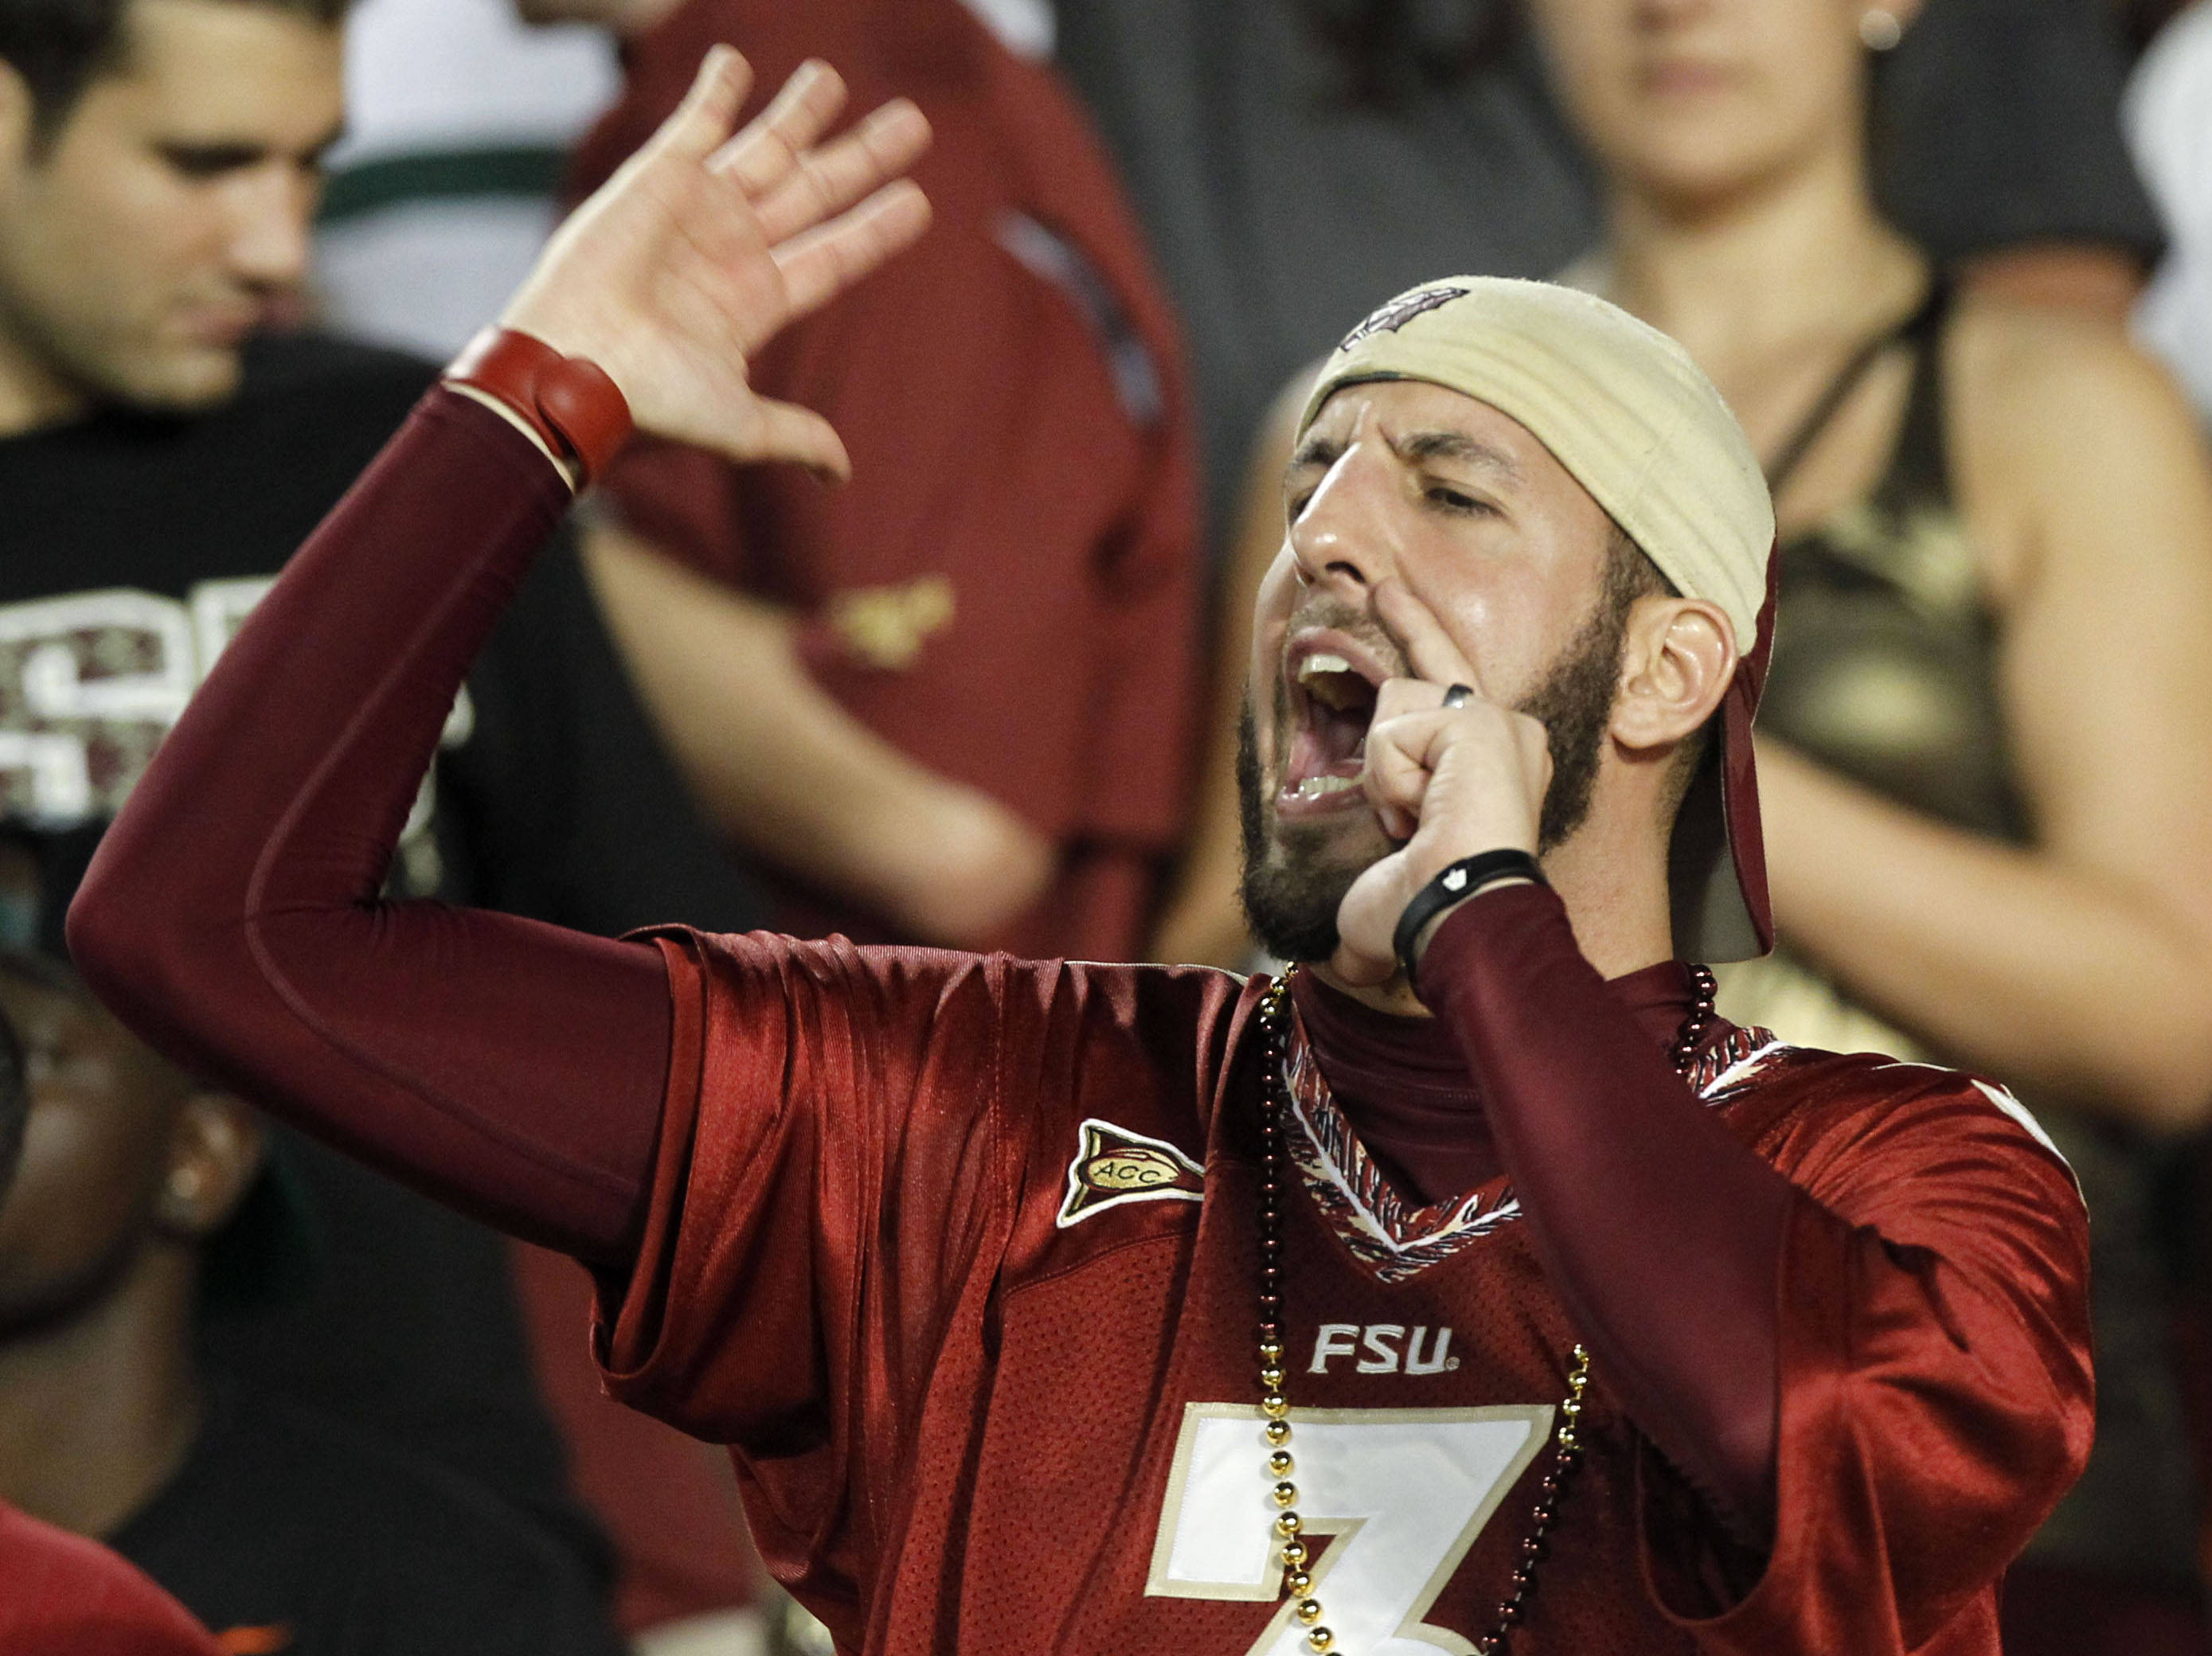 A fan cheers for Florida State during the game. (AP Photo/Alan Diaz)